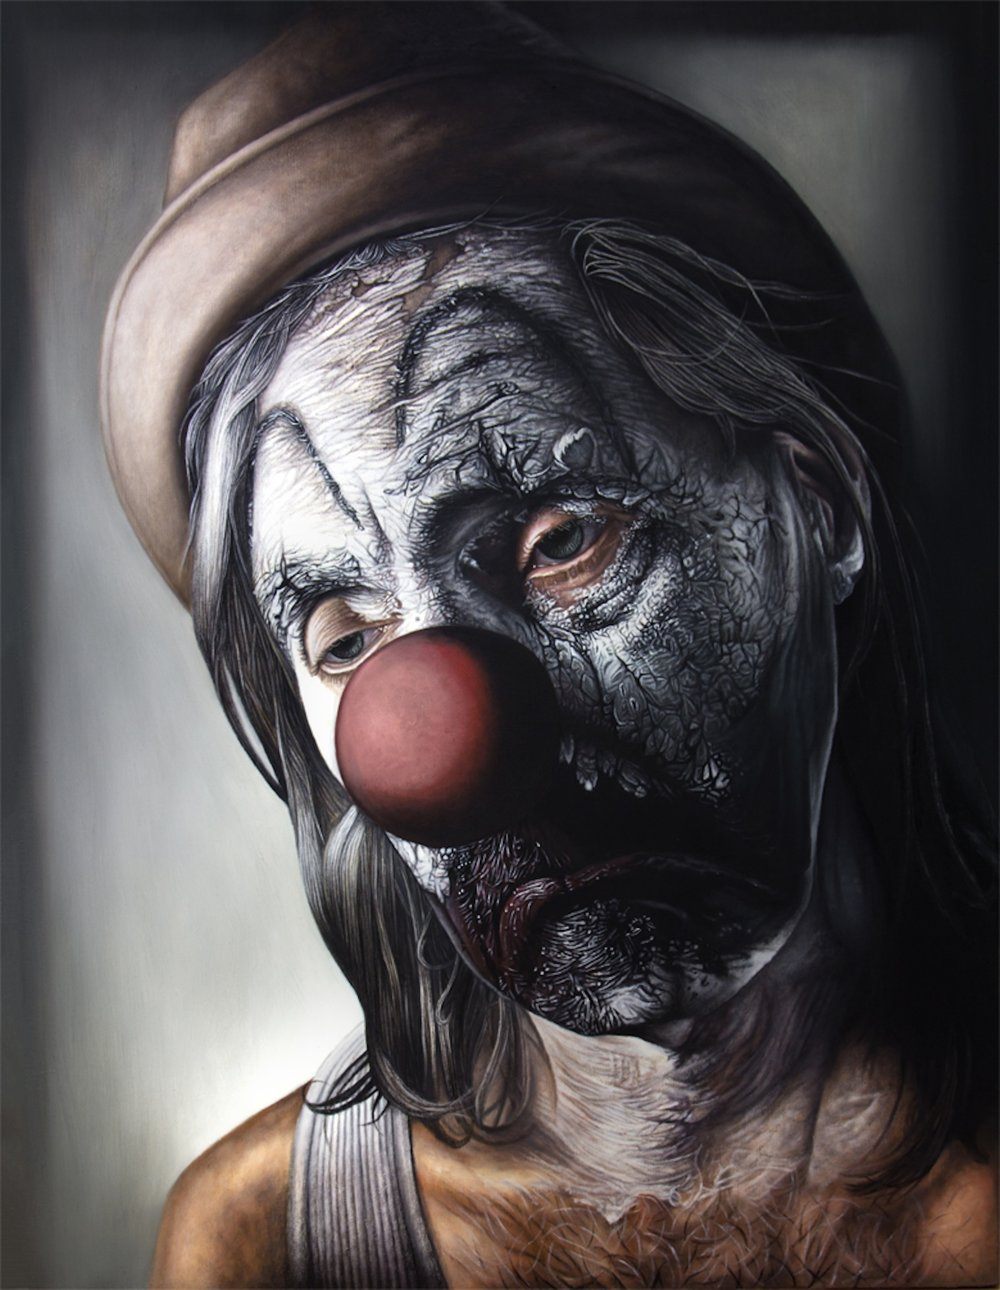 "HERETIC. 51"" x 67"". Oil on Linen. 2014"